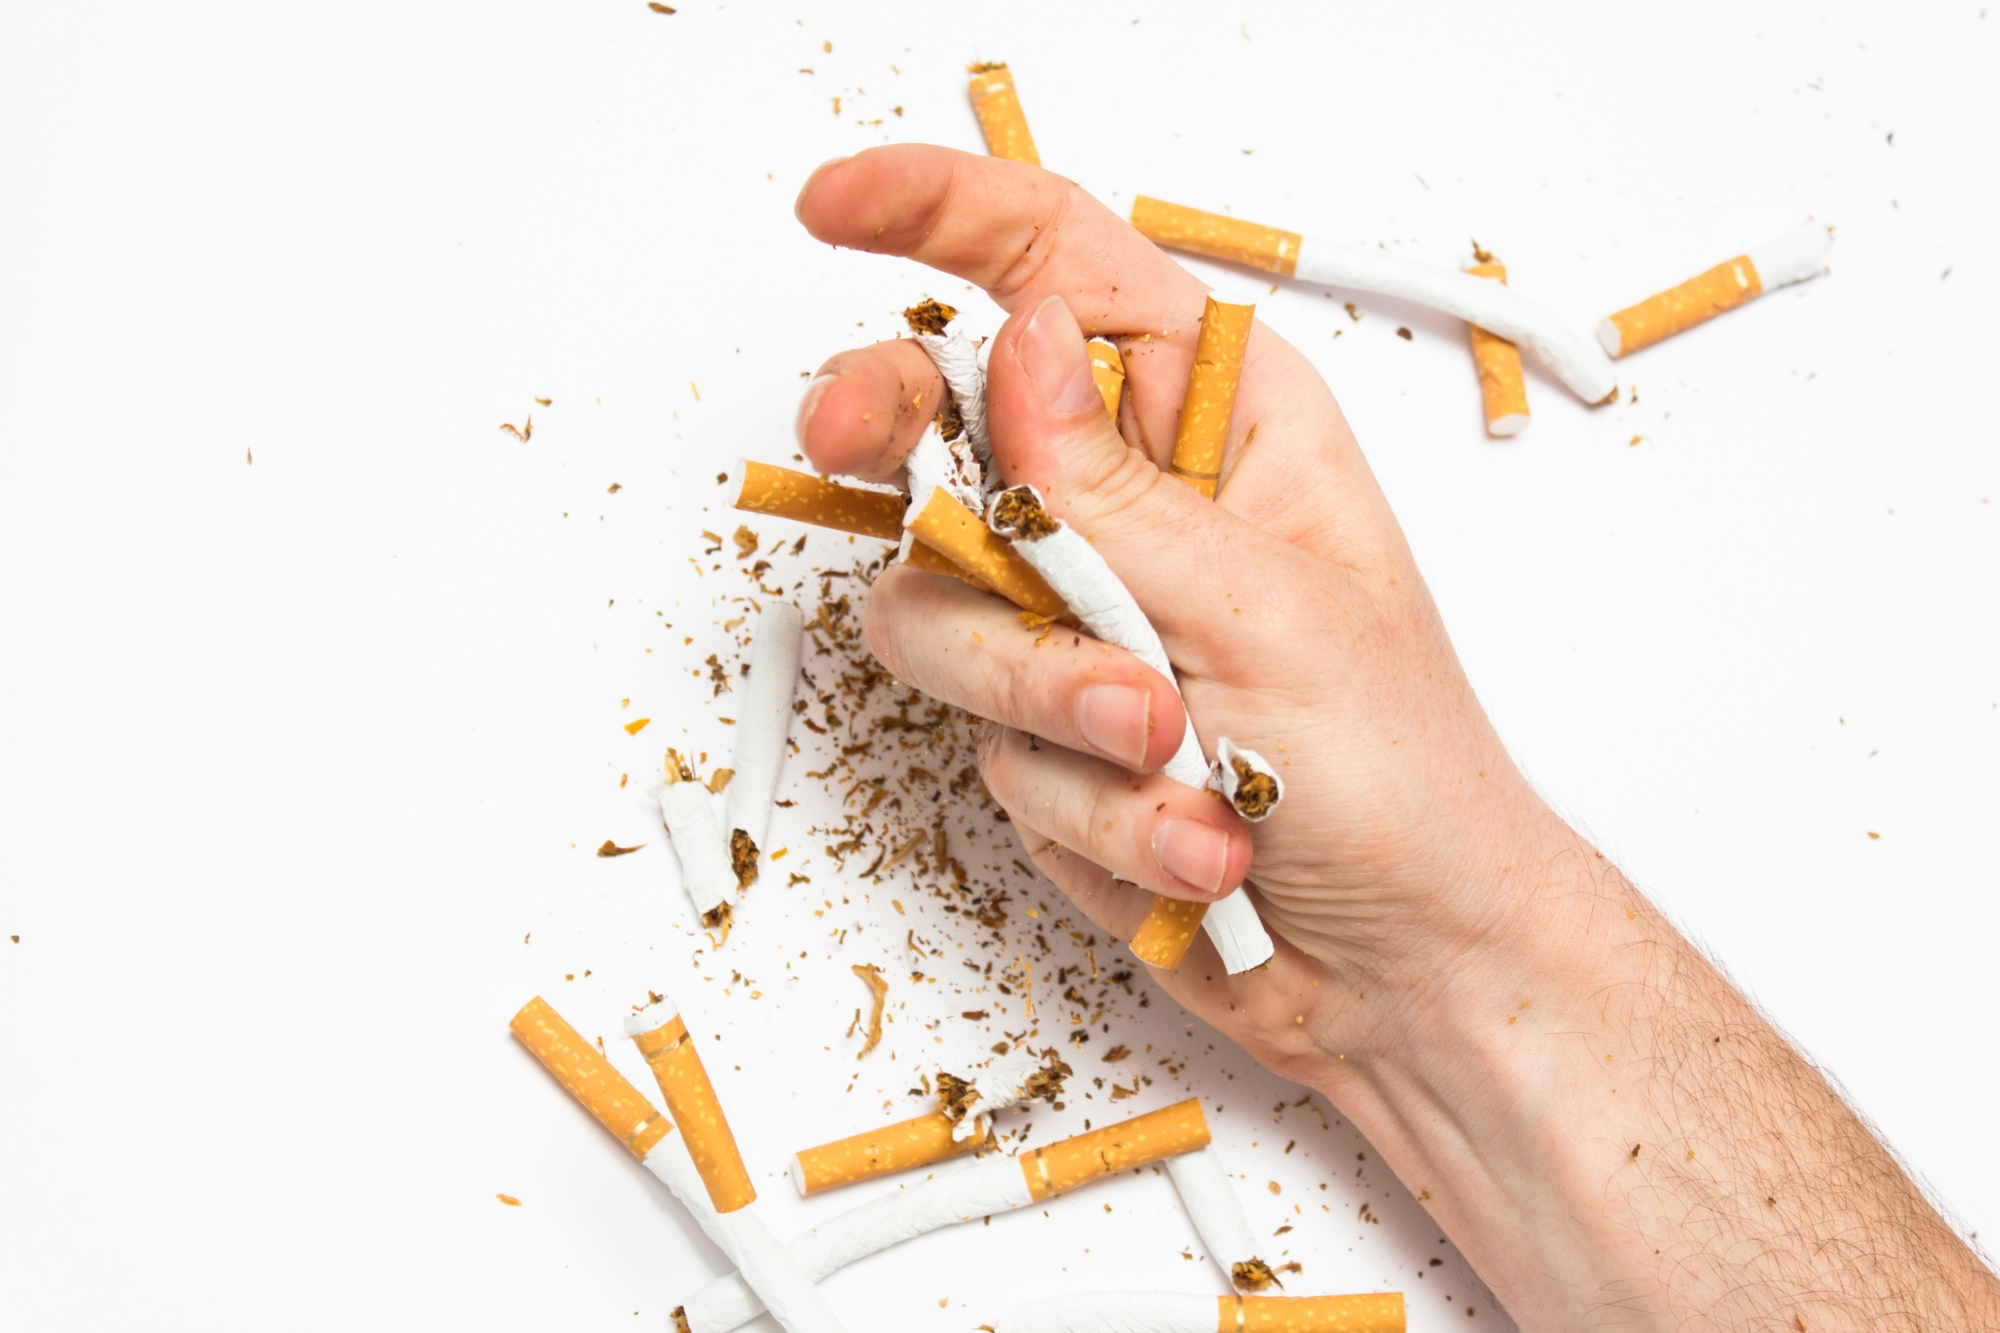 hypnotherapy can it stop cigarette addiction Cahni konig hypnotherapy will guide you into a natural, yet altered state of mind that we naturally enter into every day cahni konig hypnotherapist certified clinical, interpersonal, transpersonal hypnotherapist, and karuna reiki master.